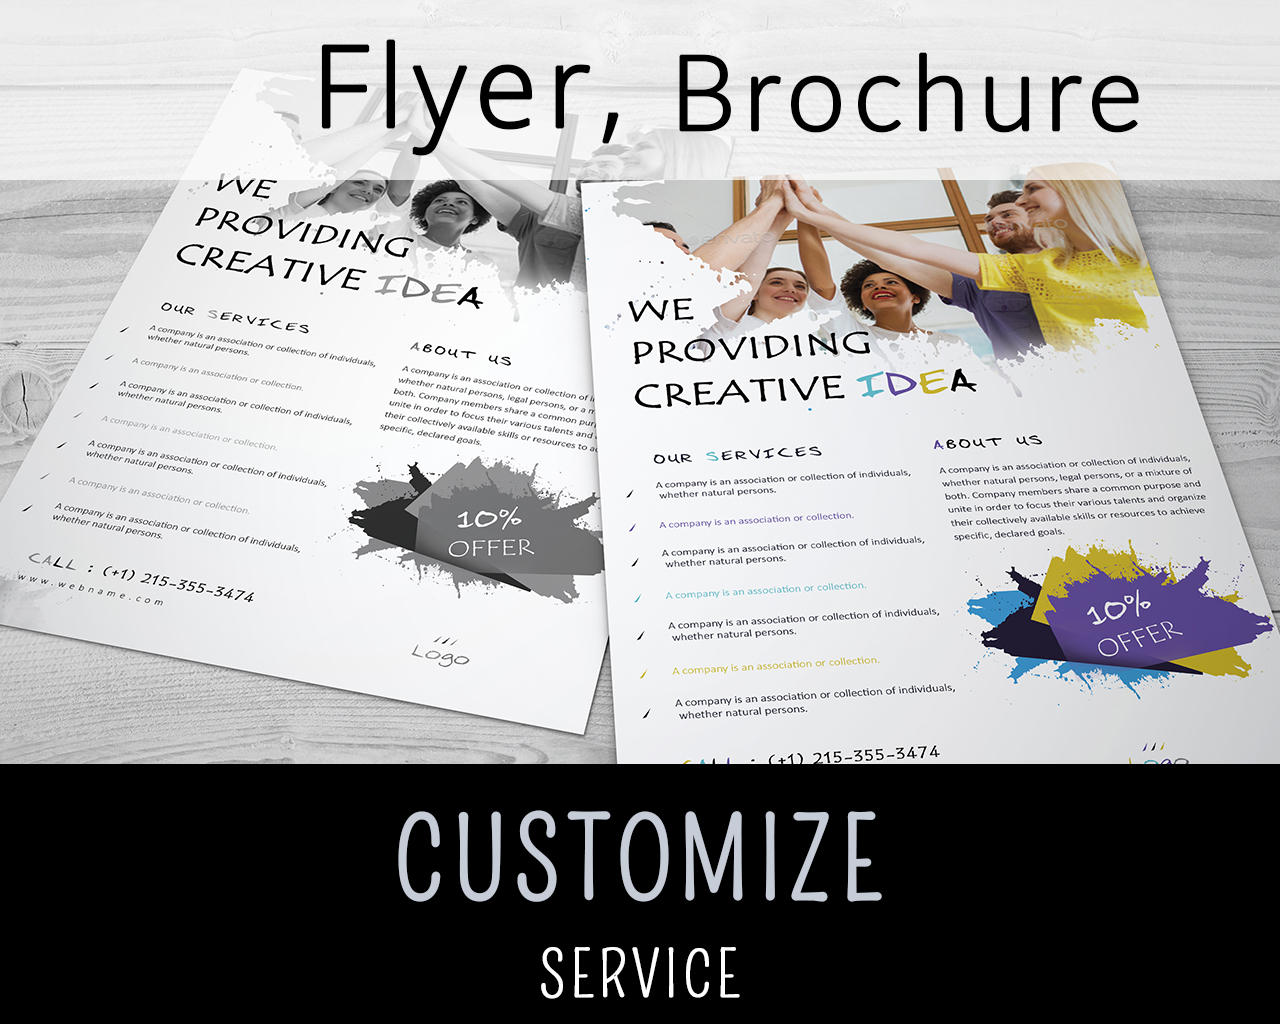 Flyer, Brochure Customization by arnabkumar - 98106